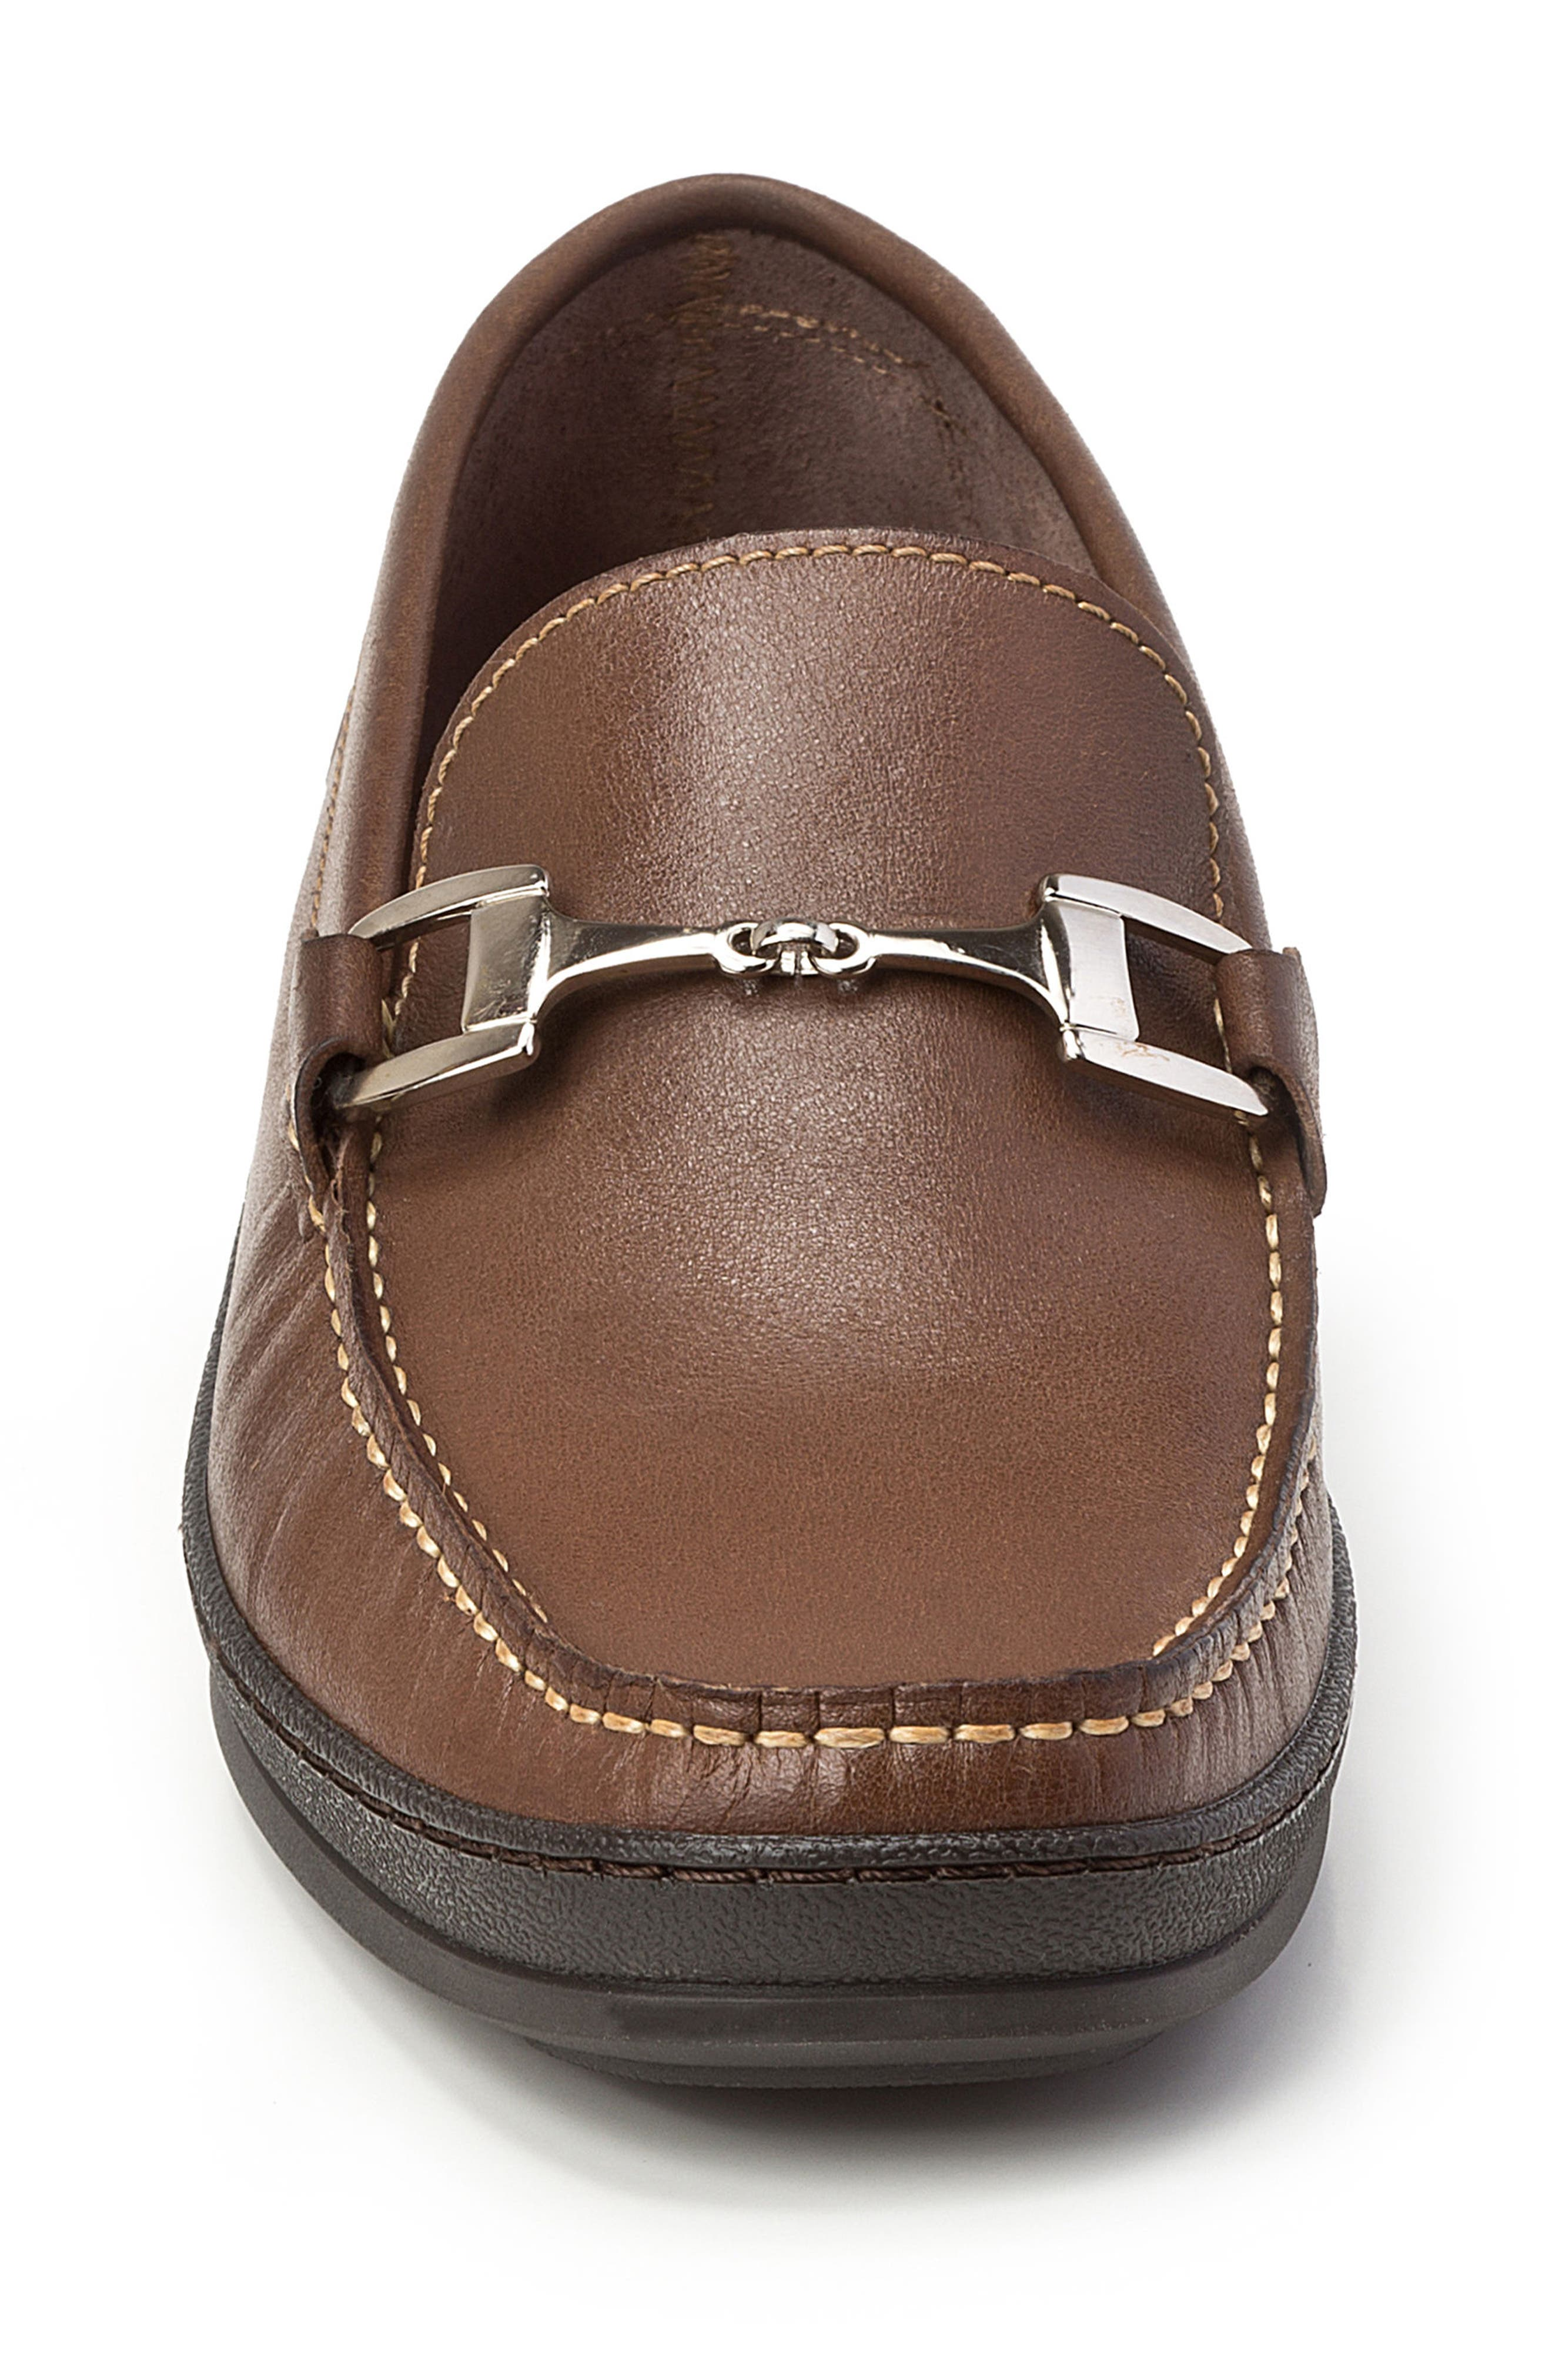 Navarro Bit Loafer,                             Alternate thumbnail 4, color,                             Brown Leather